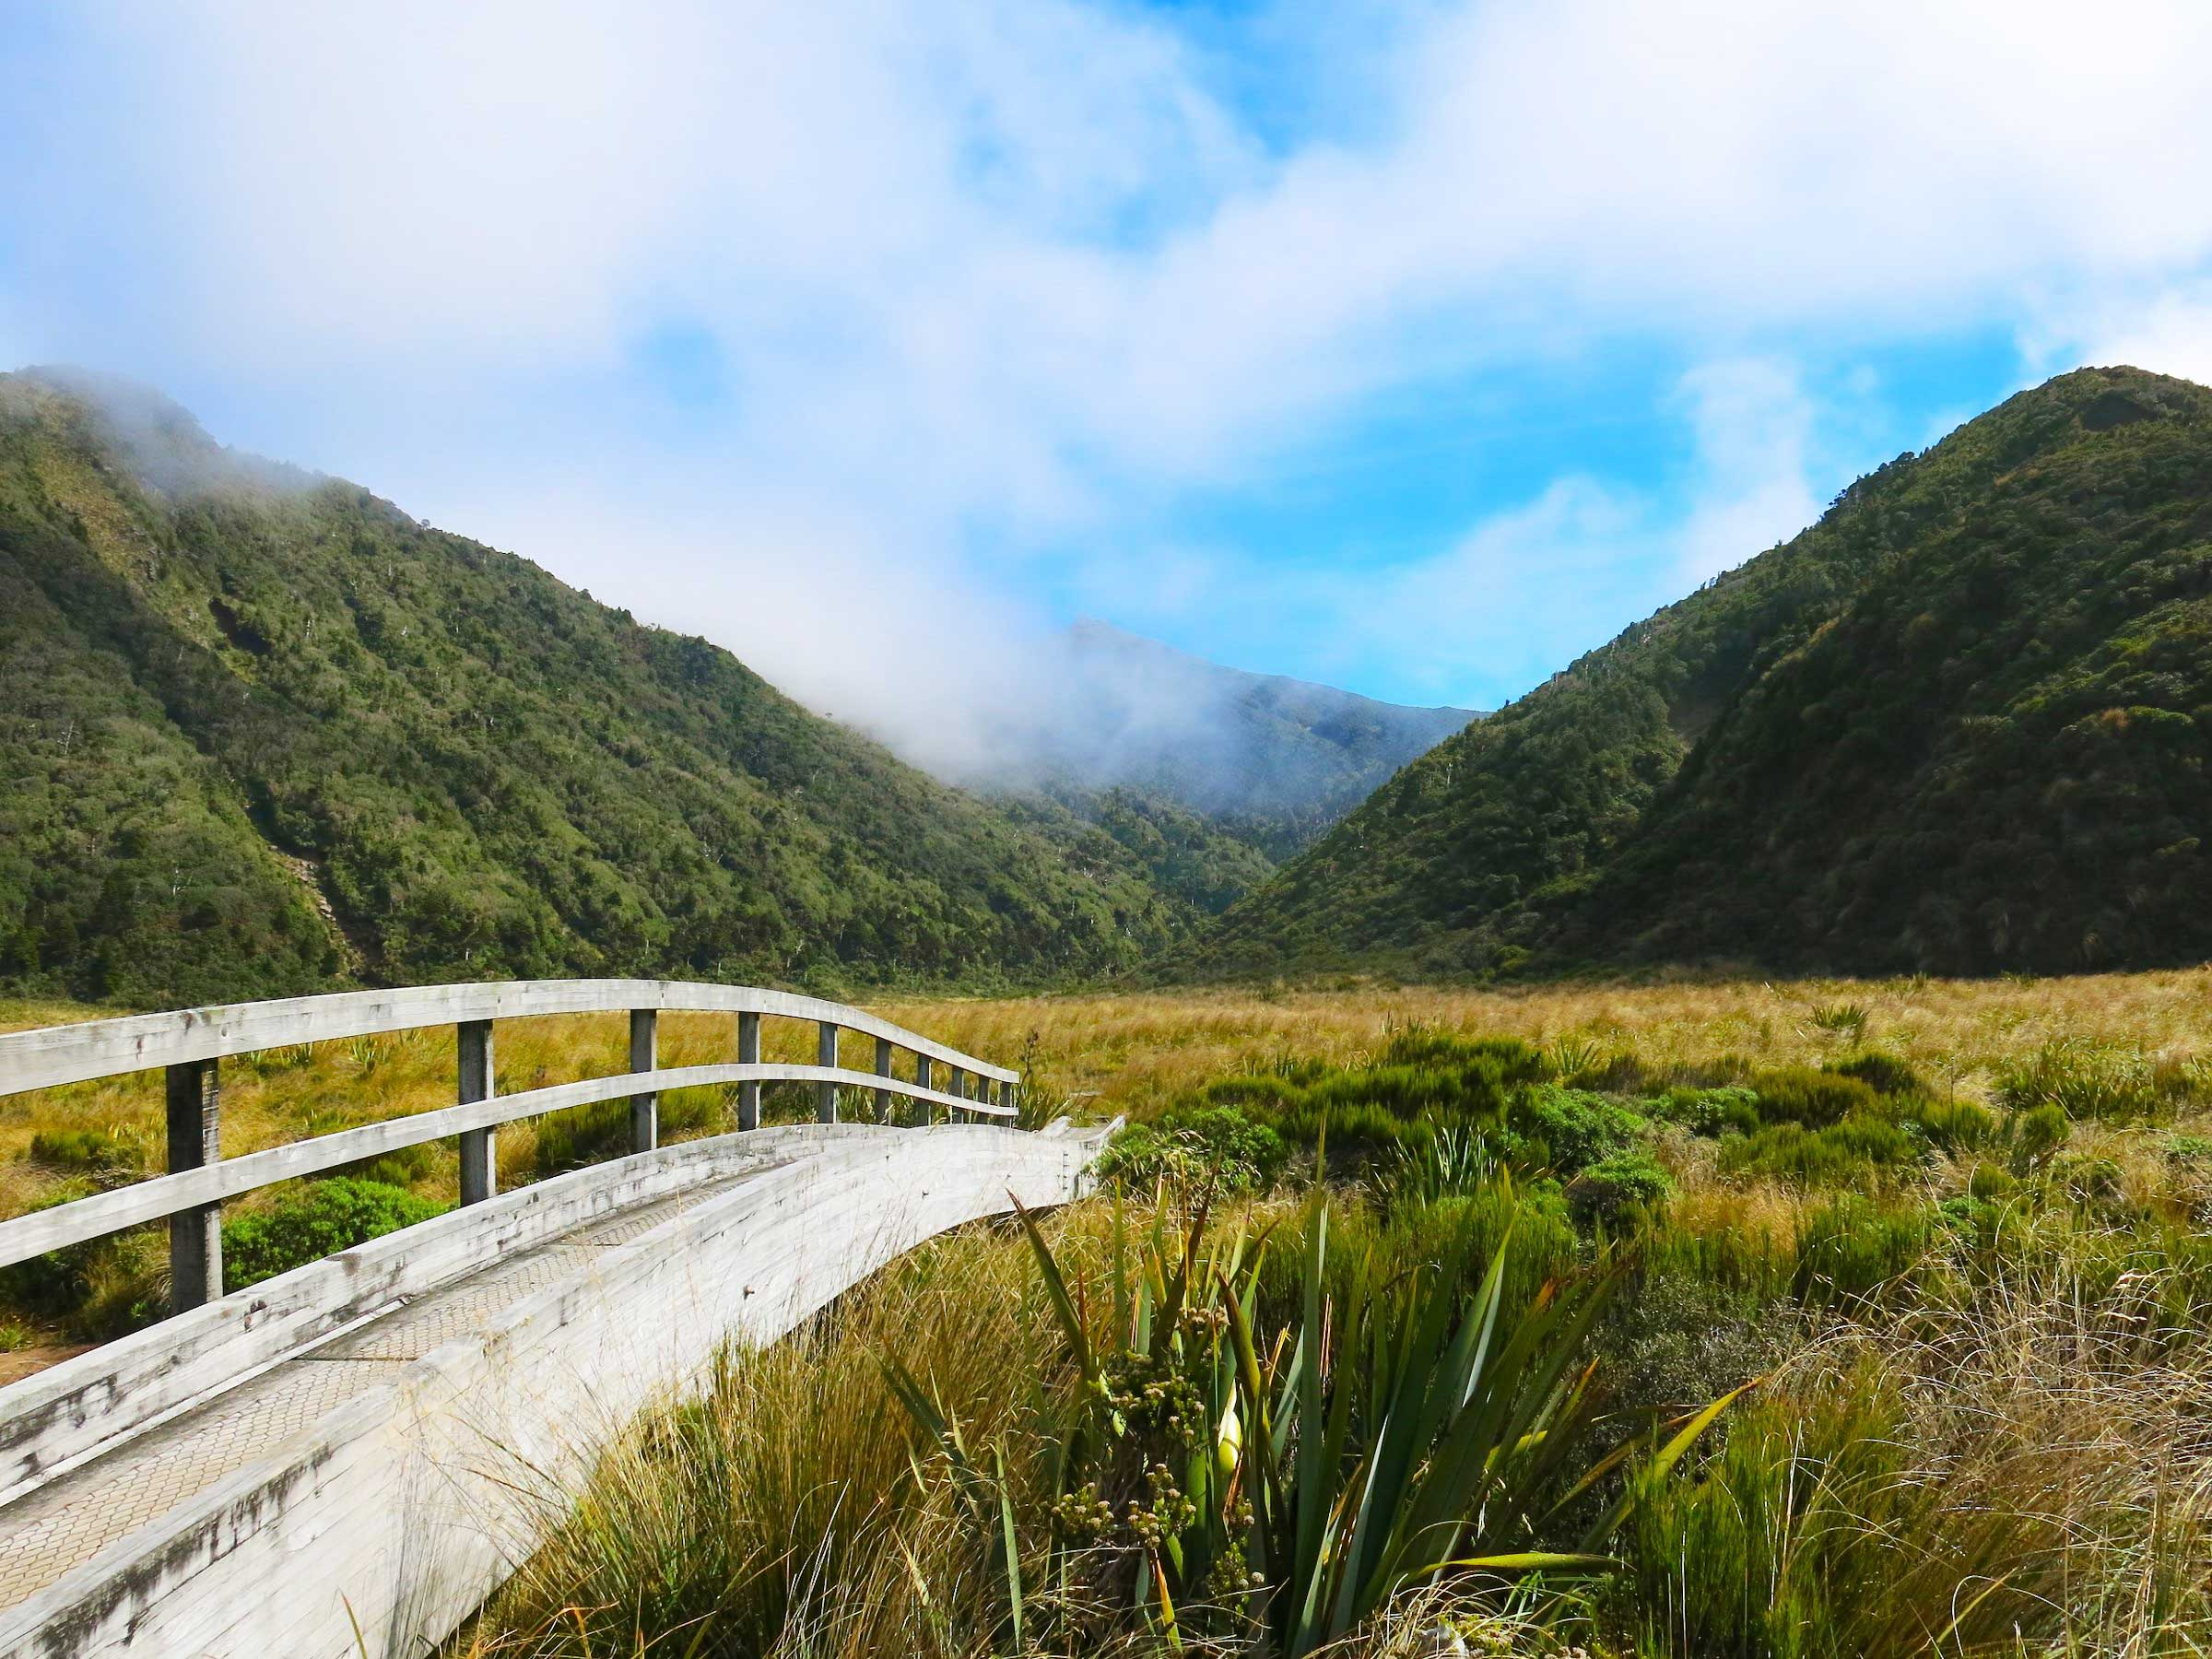 A wooden bridge with a handrail traversing marshy tussock land extending to the base of mountains in the distance on the Pouakai Crossing